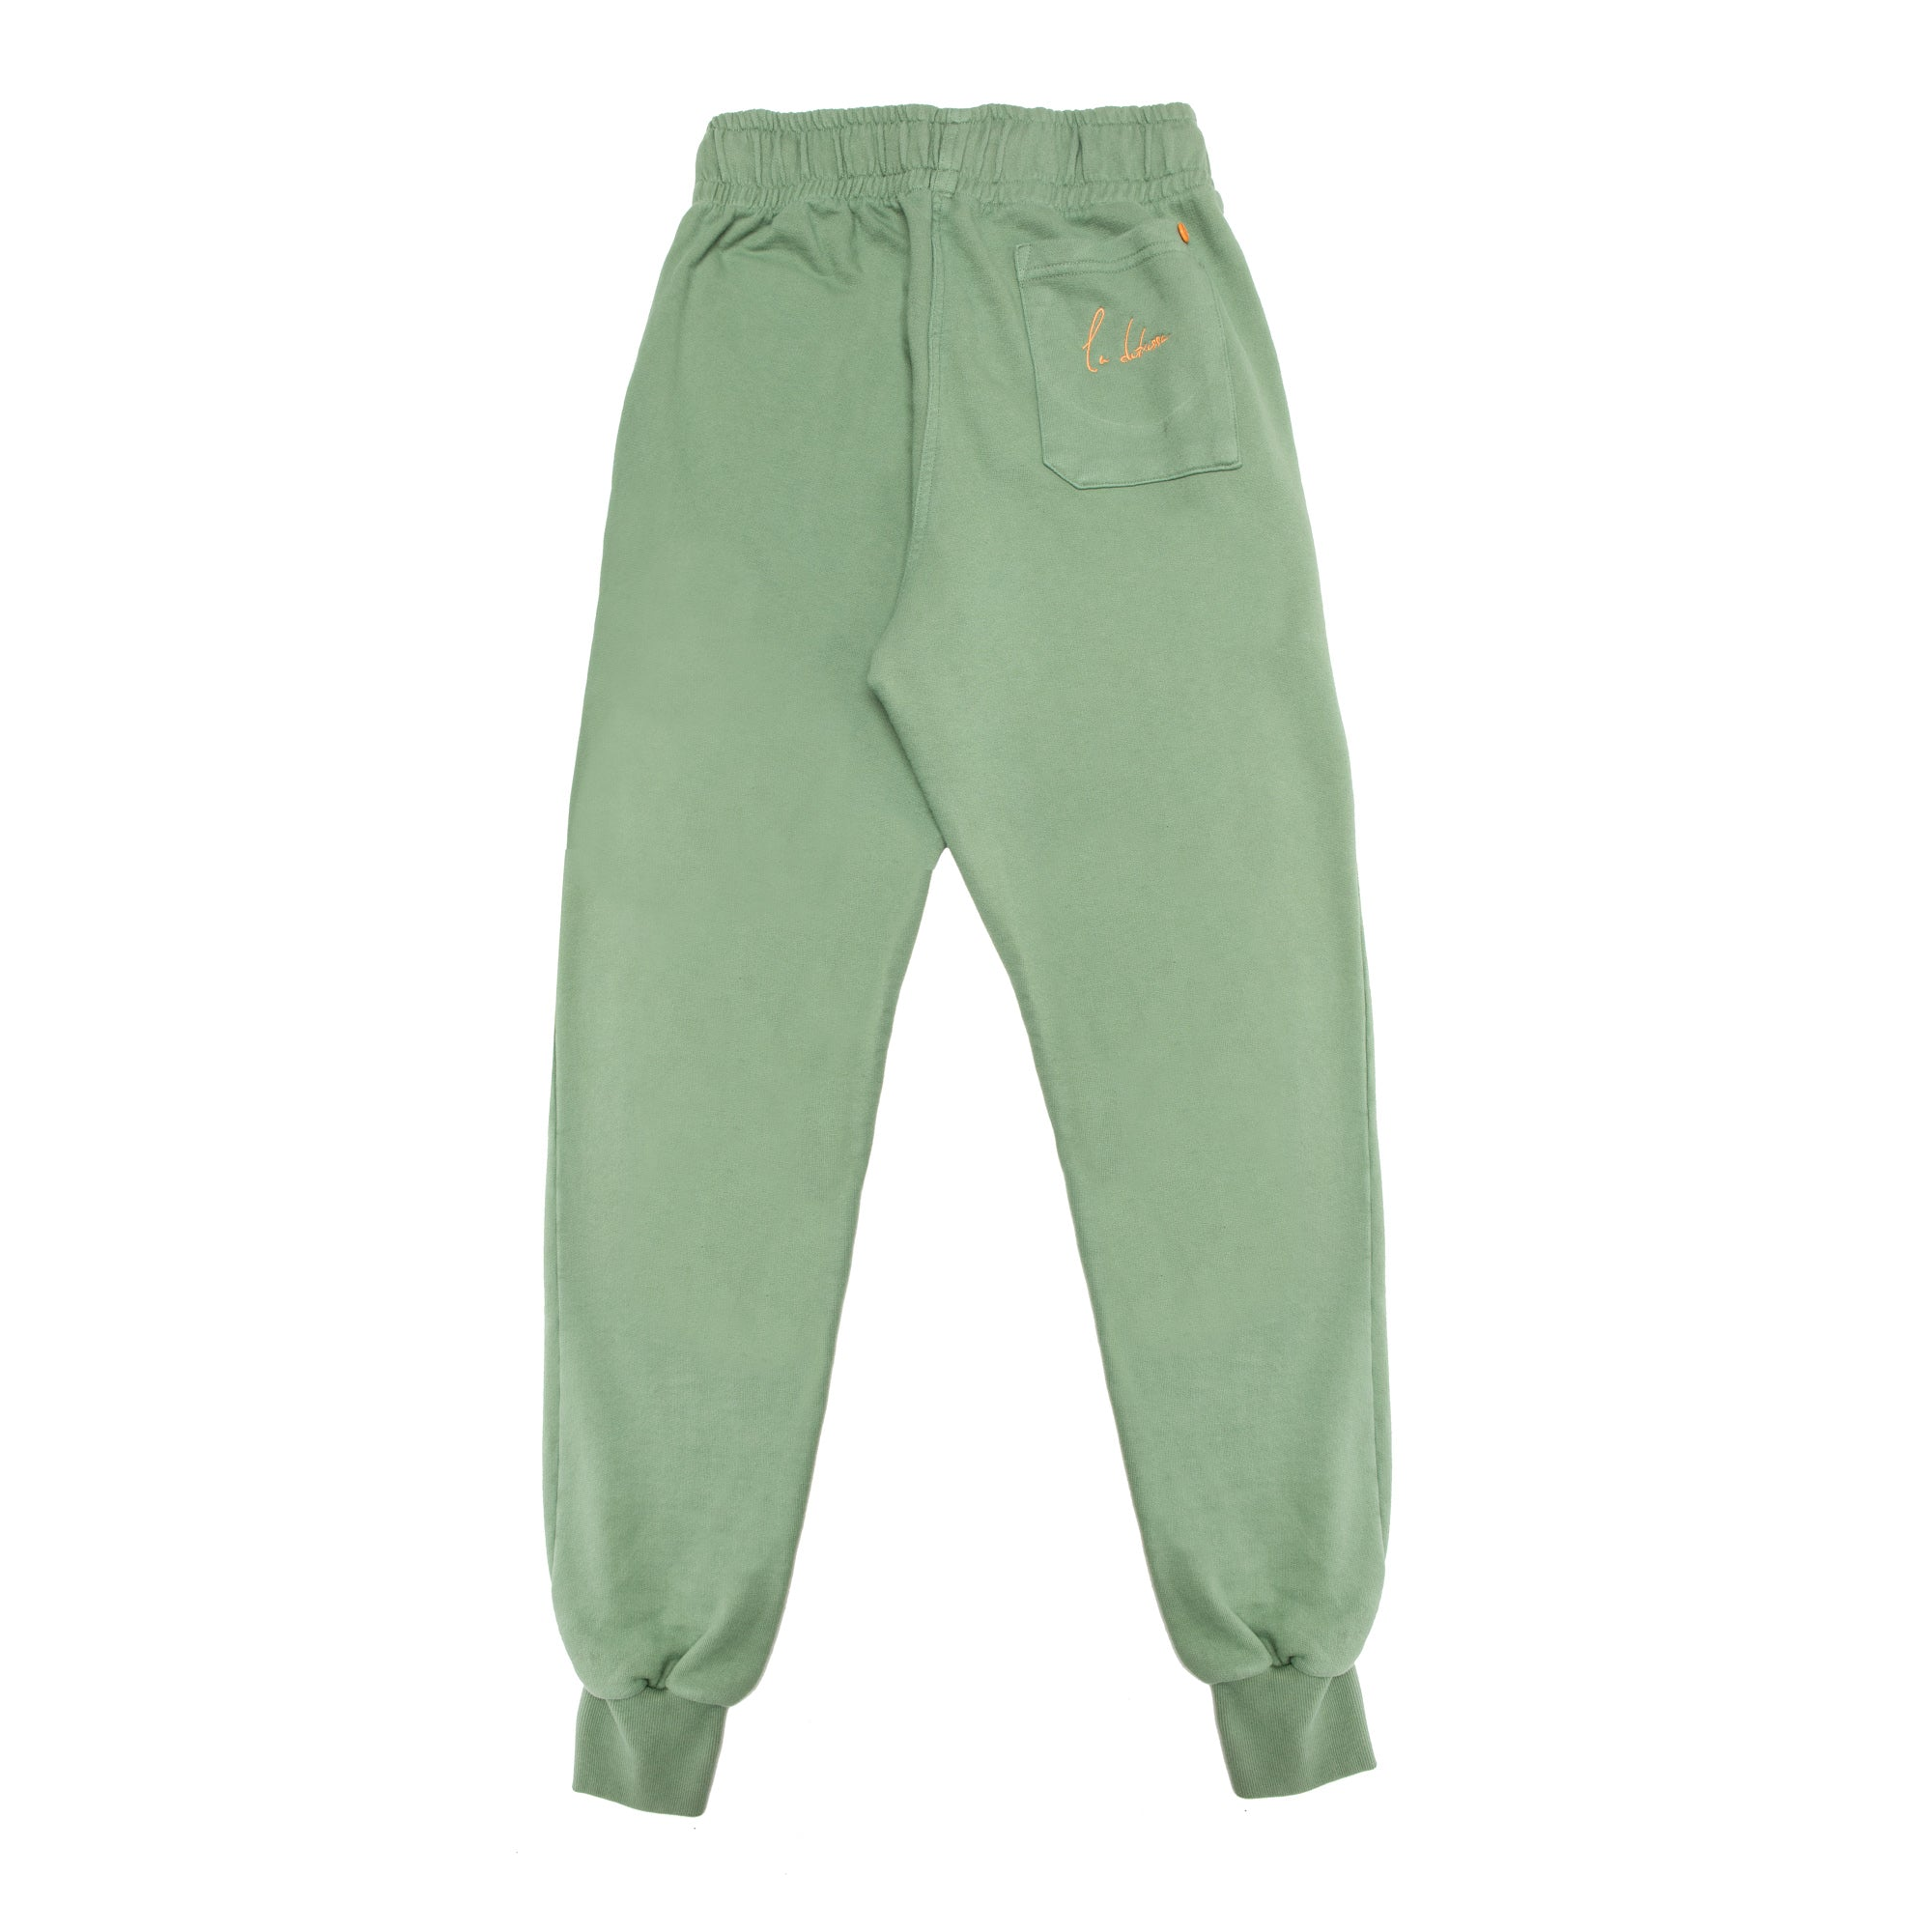 The Green Sweatpant